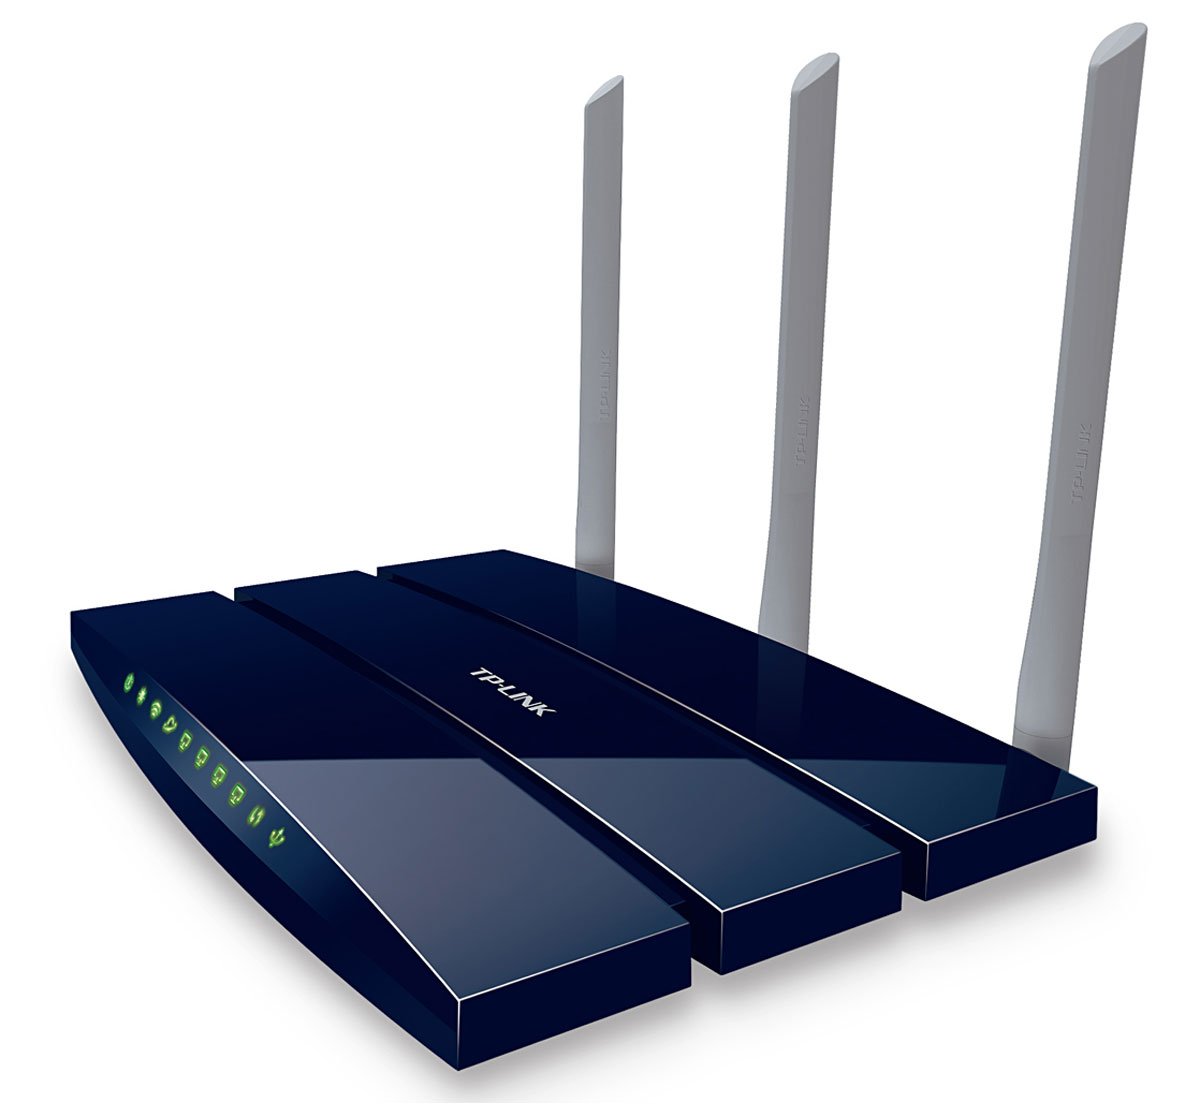 TP-Link TL-WR1045ND беспроводной маршрутизатор